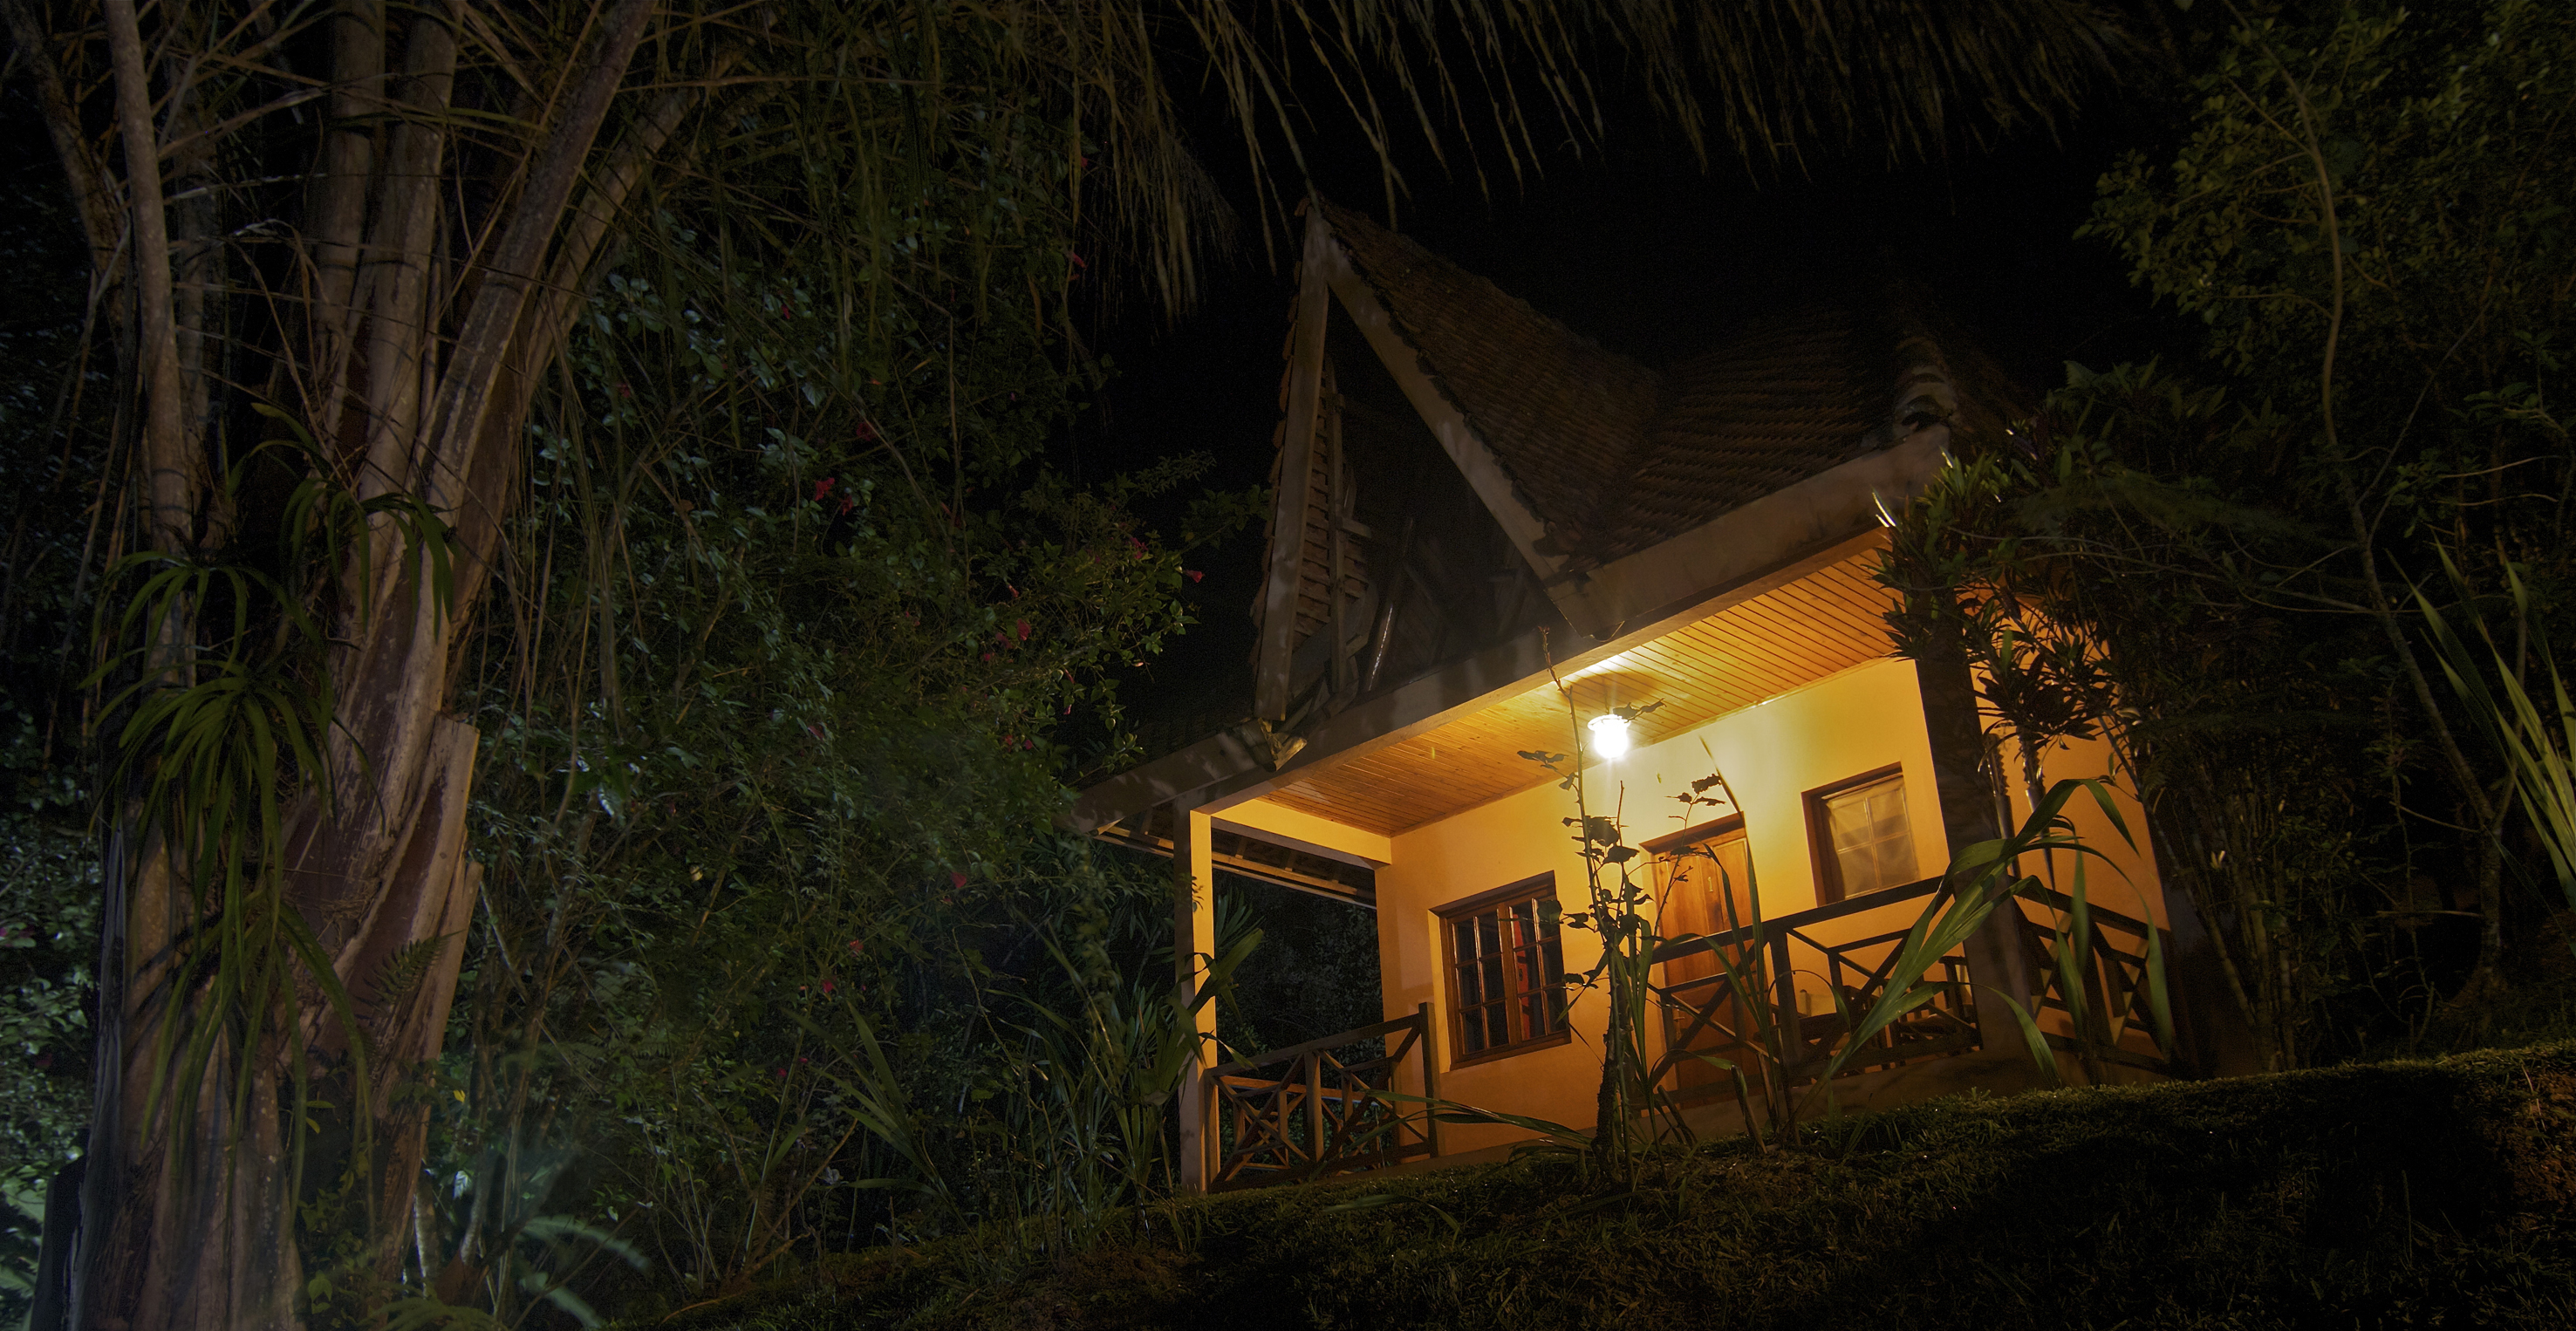 vakona-forest-lodge-cottage-night